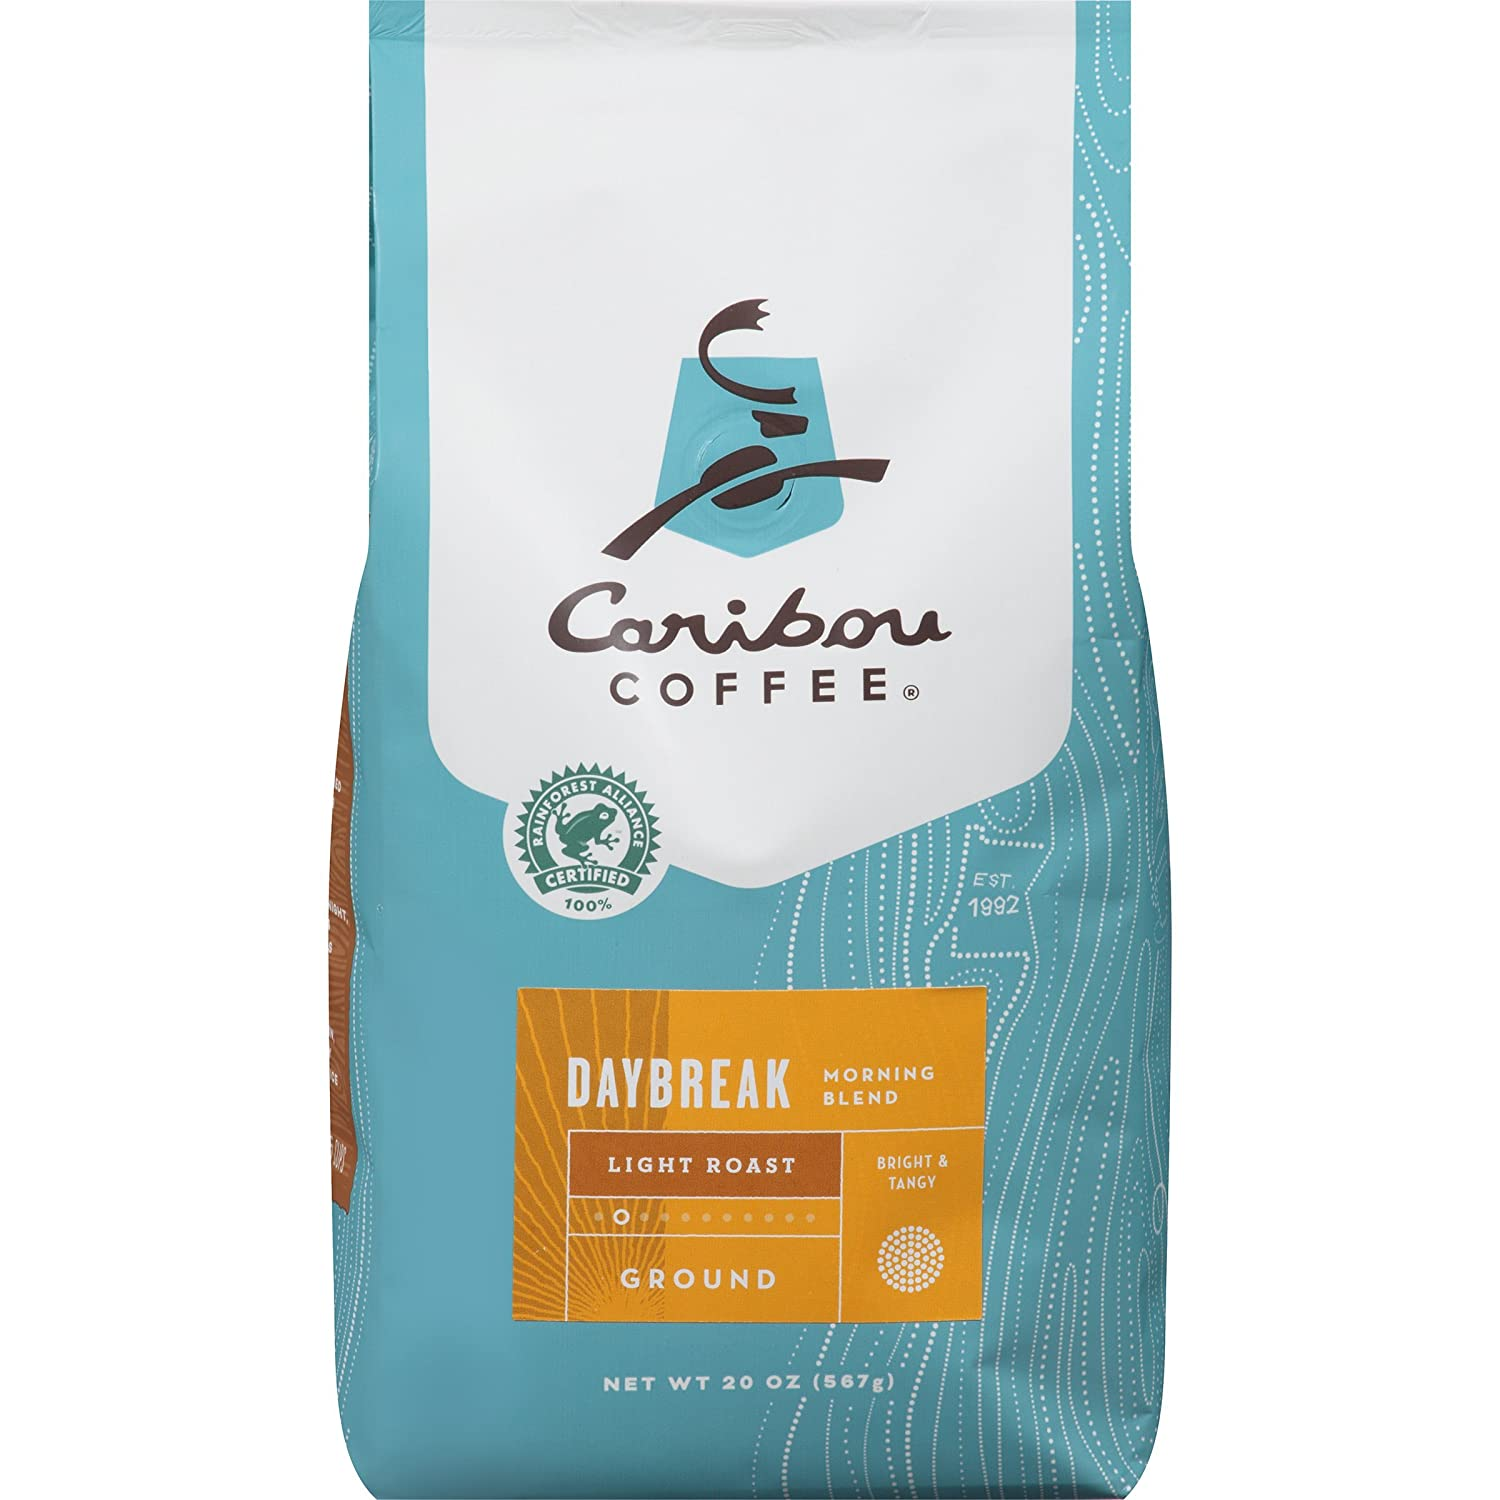 Caribou Coffee, Daybreak Morning Blend, Ground, 20 oz. Bag, Breakfast Blend of Light Roast Coffee Beans from the Americas & East Africa, Bright Body with A Smooth Finish; Sustainable Sourcing